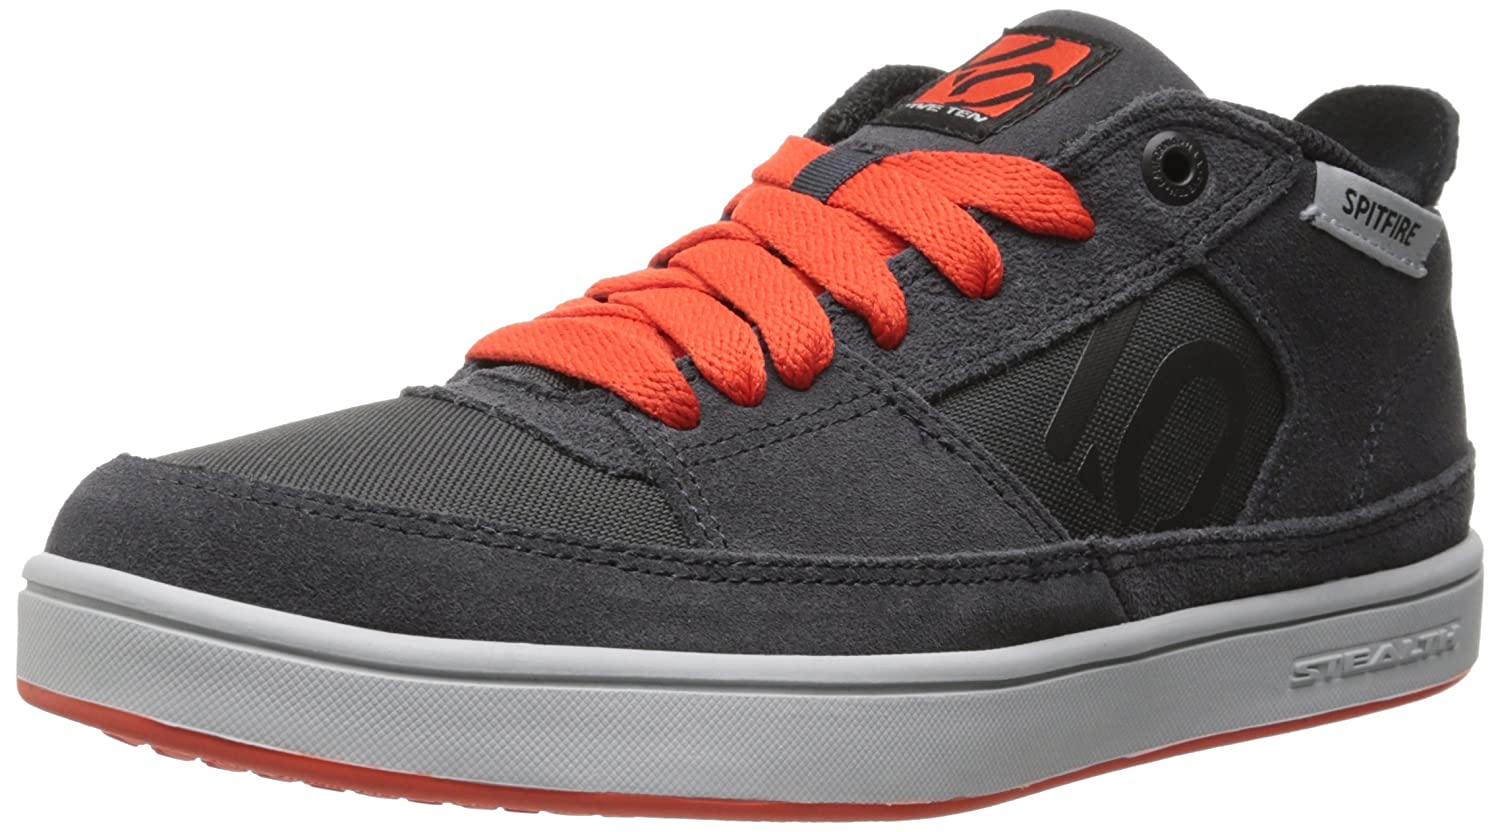 Five Ten Men's Spitfire Bike Shoe B00LHUGJDO 13 D(M) US|Dark Grey/Bold Orange